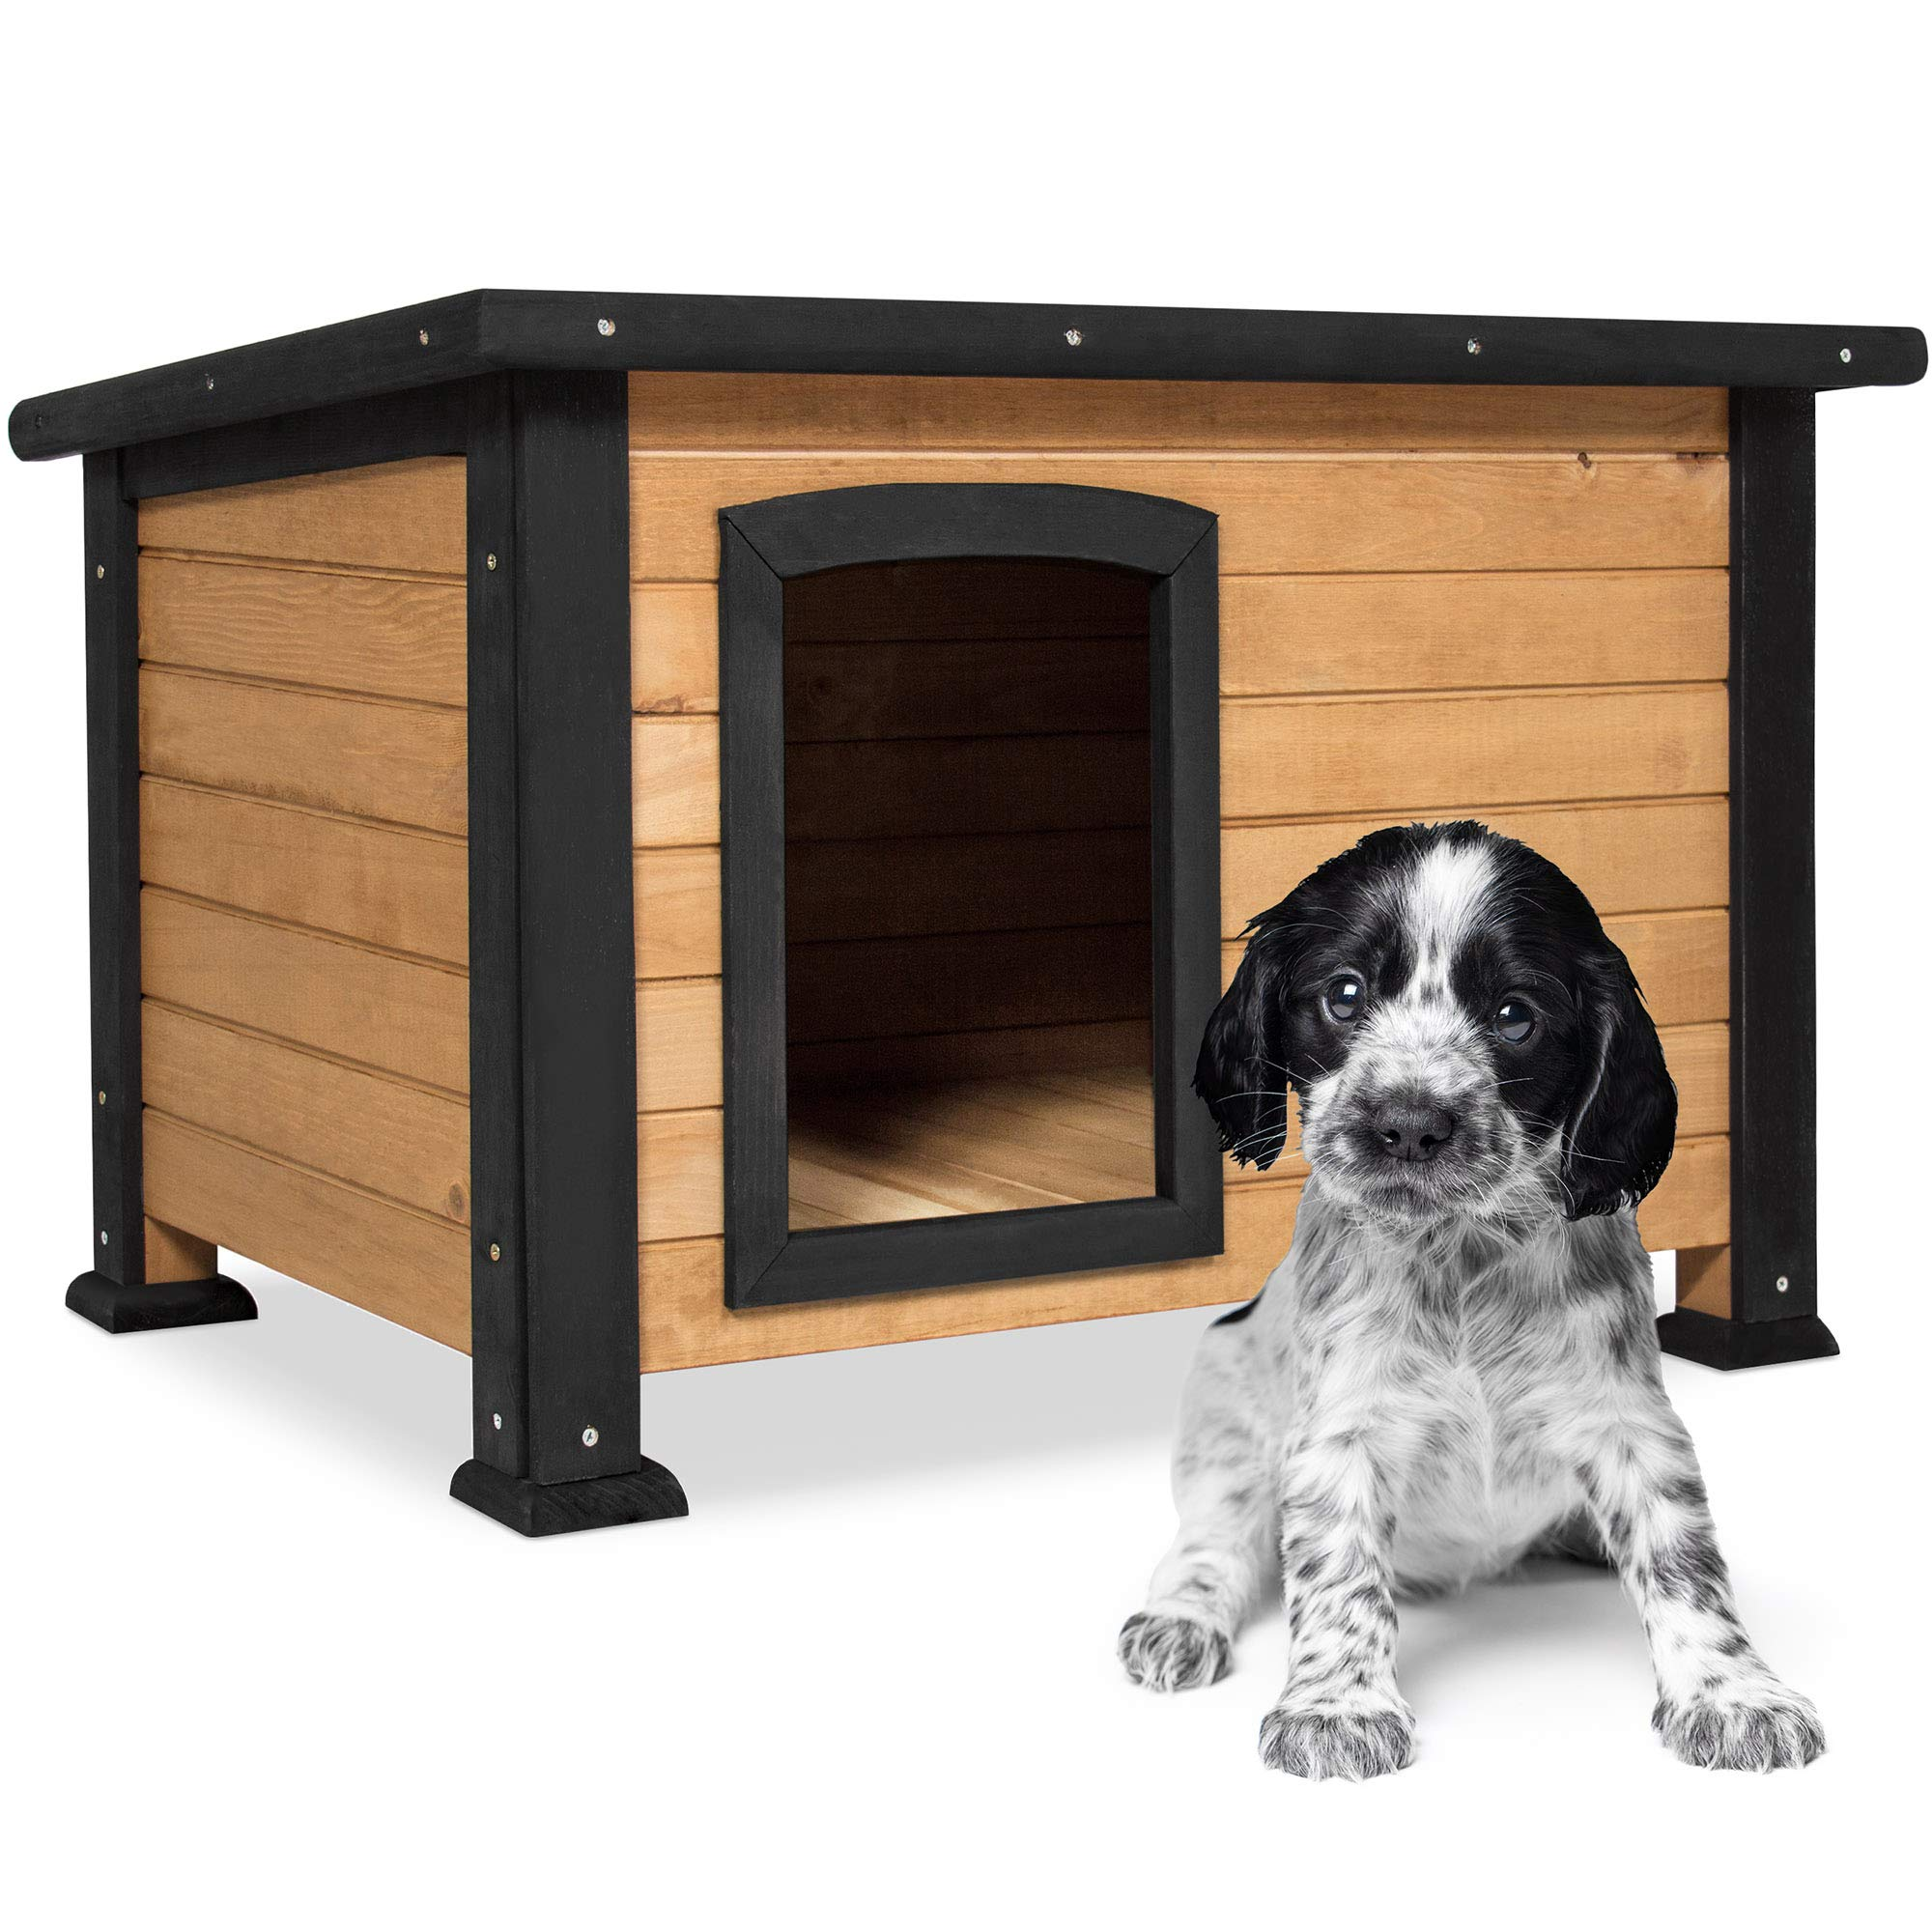 Best Choice Products Wooden Weather-Resistant Log Cabin Dog House Pet Shelter, Brown, w/Opening Roof, for Small Dogs, Outdoor or Indoor Kennel by Best Choice Products